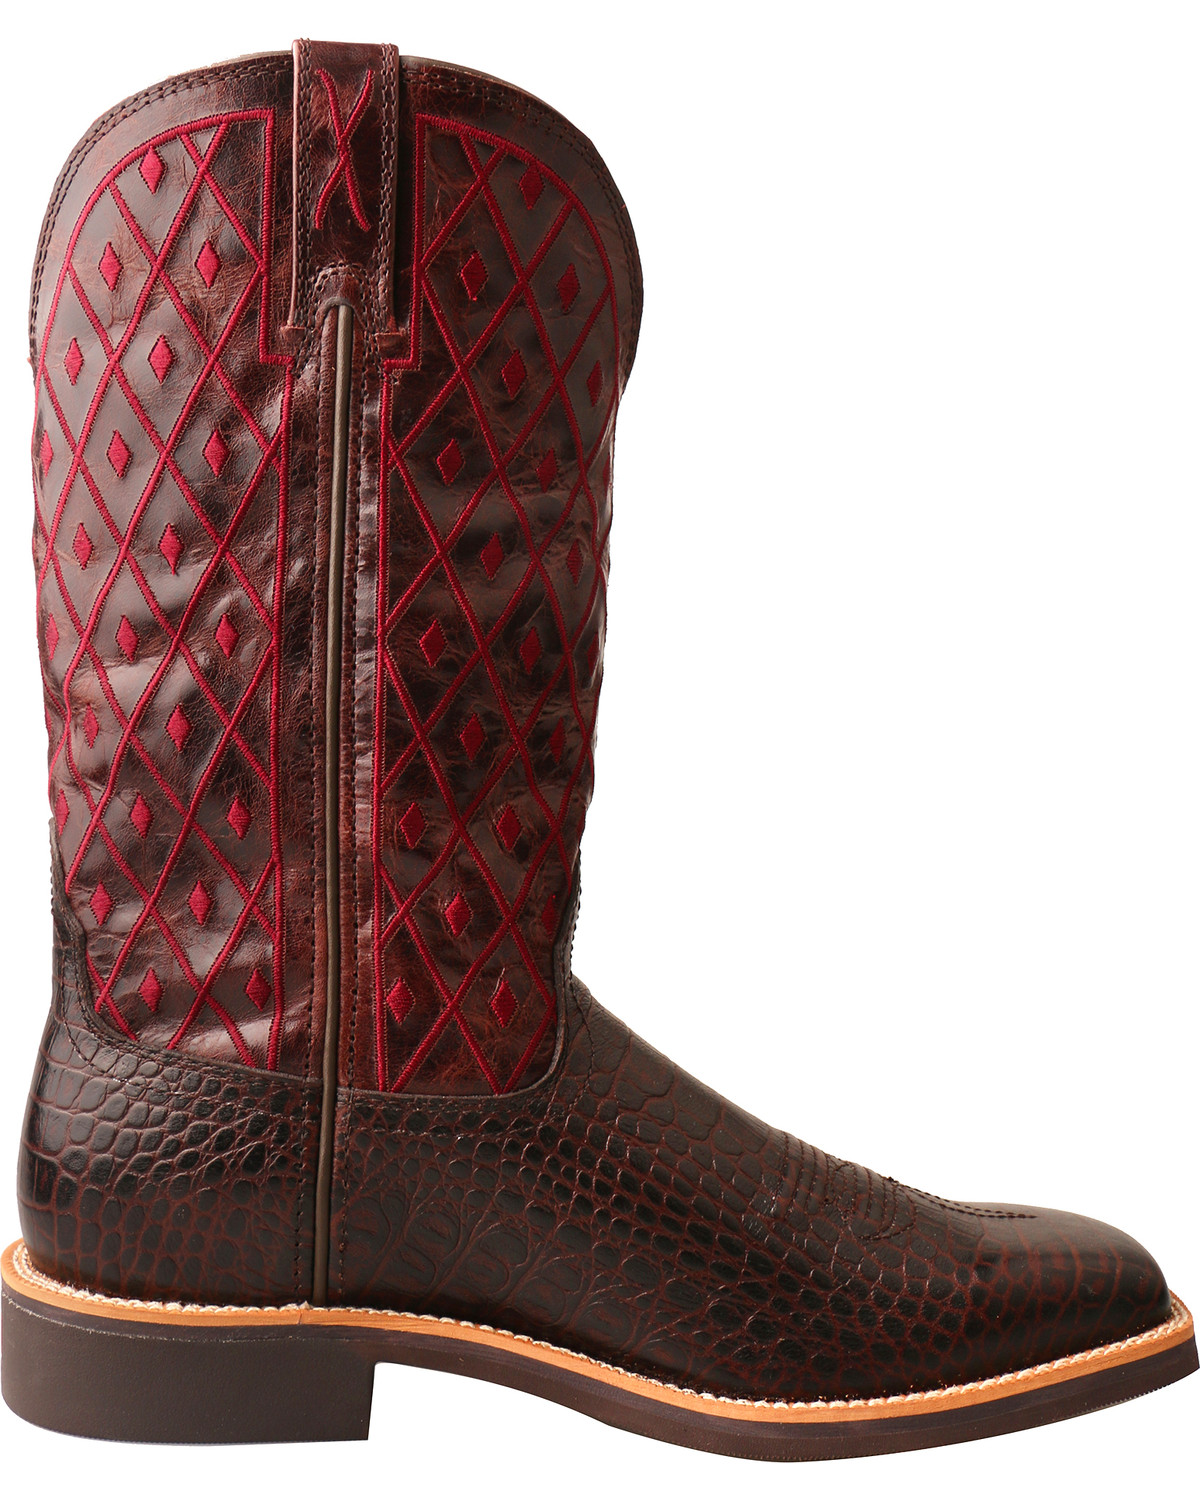 Women's Top Hand Caiman Print Square Toe Cowgirl Boots